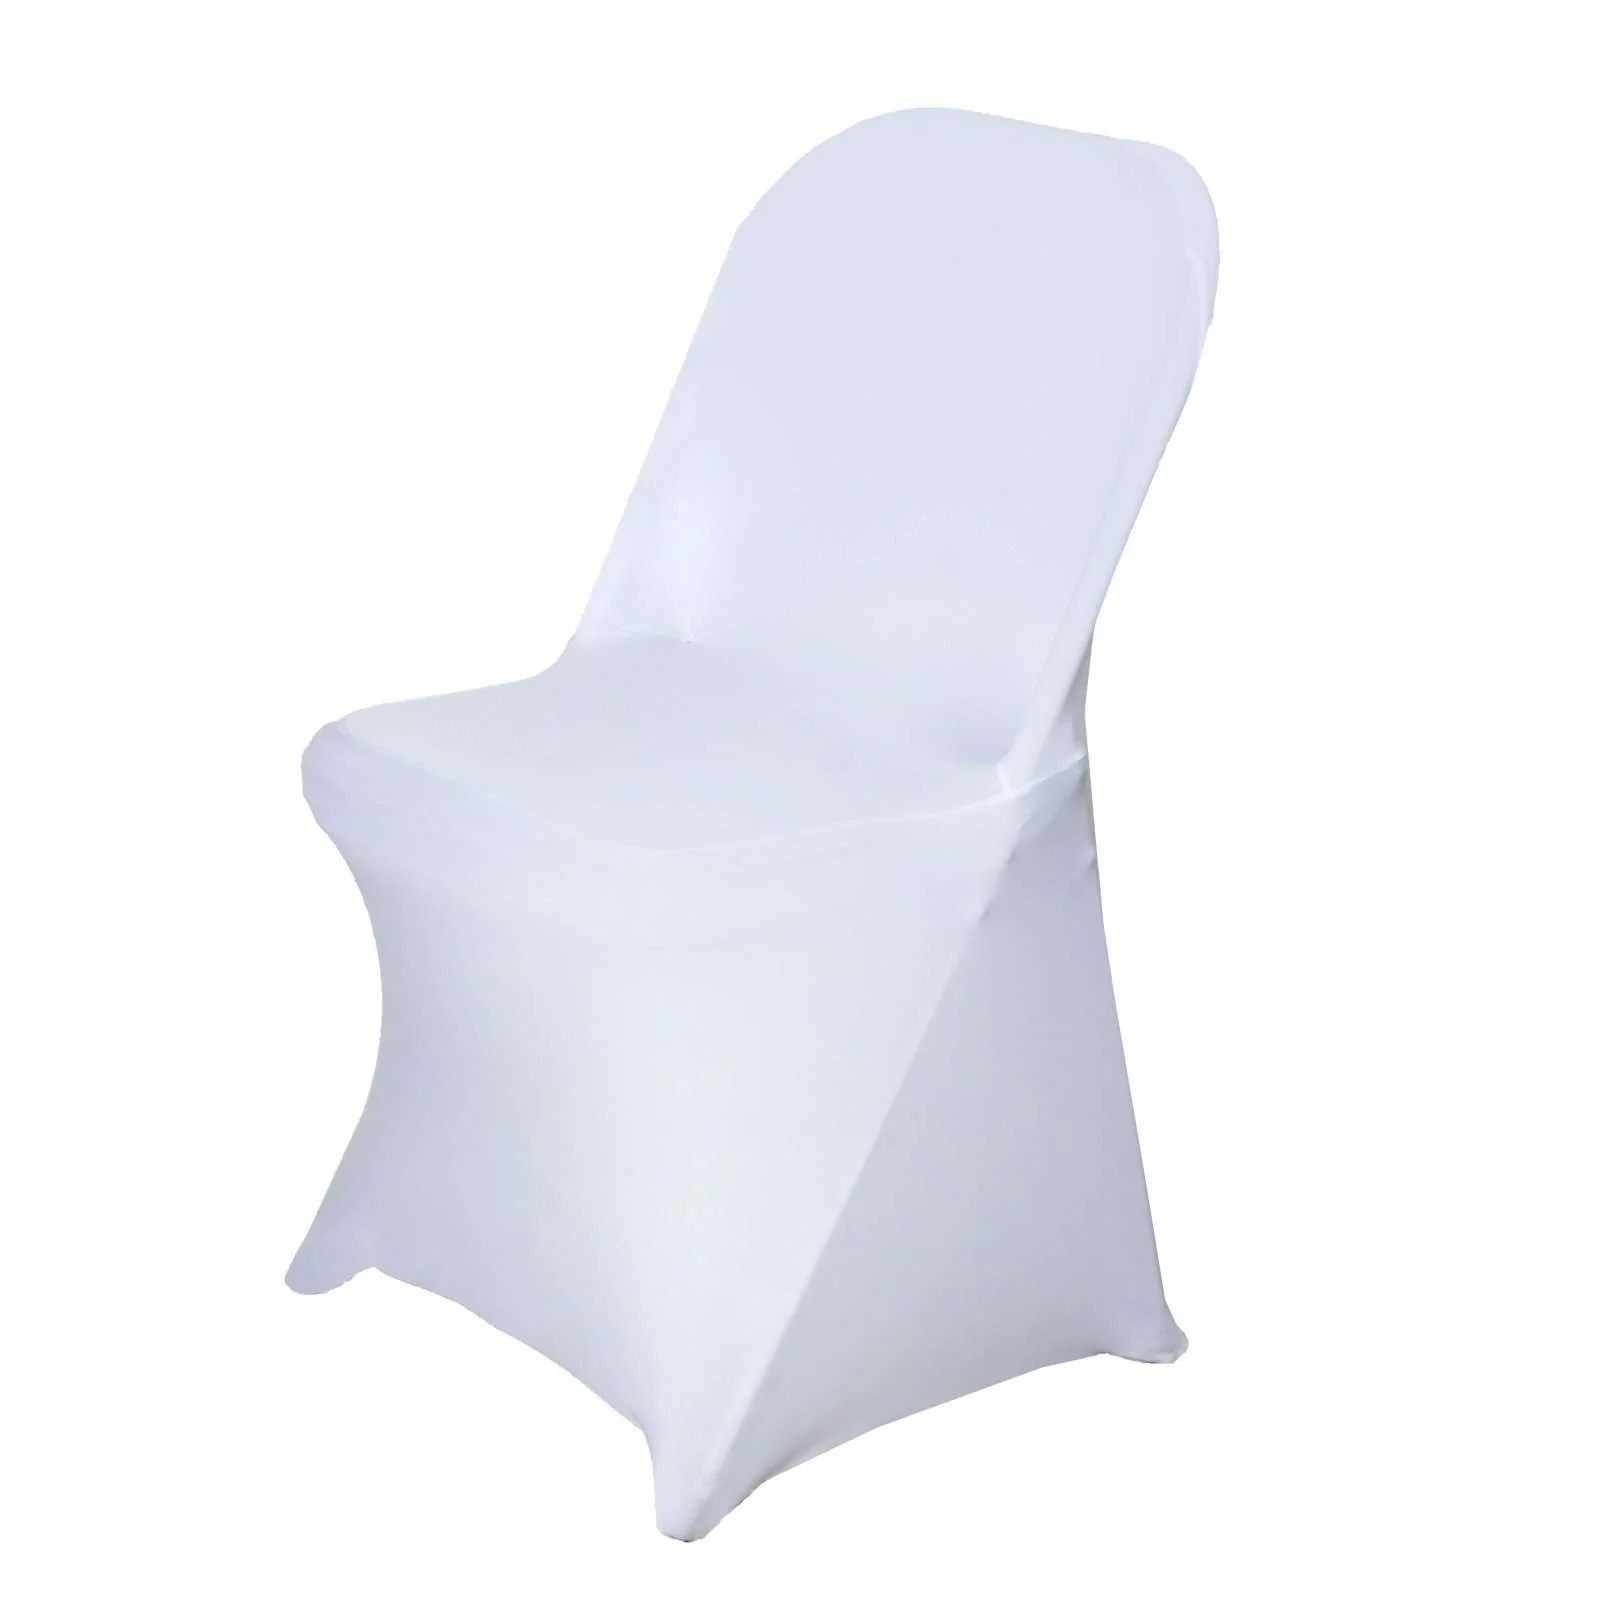 wholesale folding chair covers for sale jf white spandex stretch cover wedding party